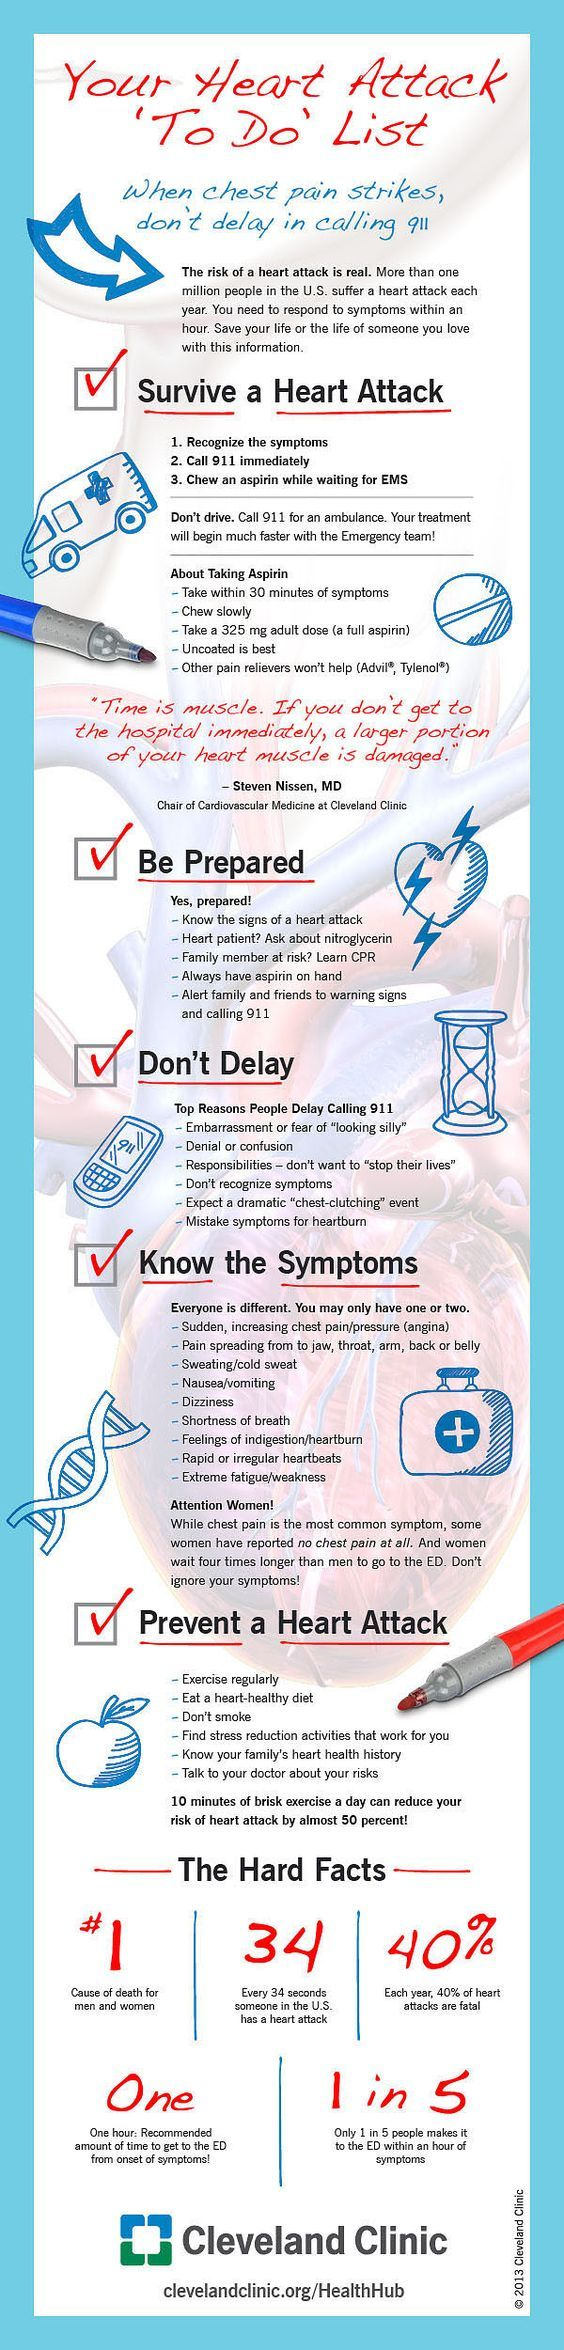 Your Heart Attack To Do List. When chest pain strikes, don't delay in calling 911. We recommend you to learn CPR, especially if tu have a family member at risk.   In our website we talk about how to perform CPR, don't doubt to visit us and learn this and other first aid procedures:  http://insidefirstaid.com/ #first #aid #heart #attack #cpr #medical #emergency #paramedics